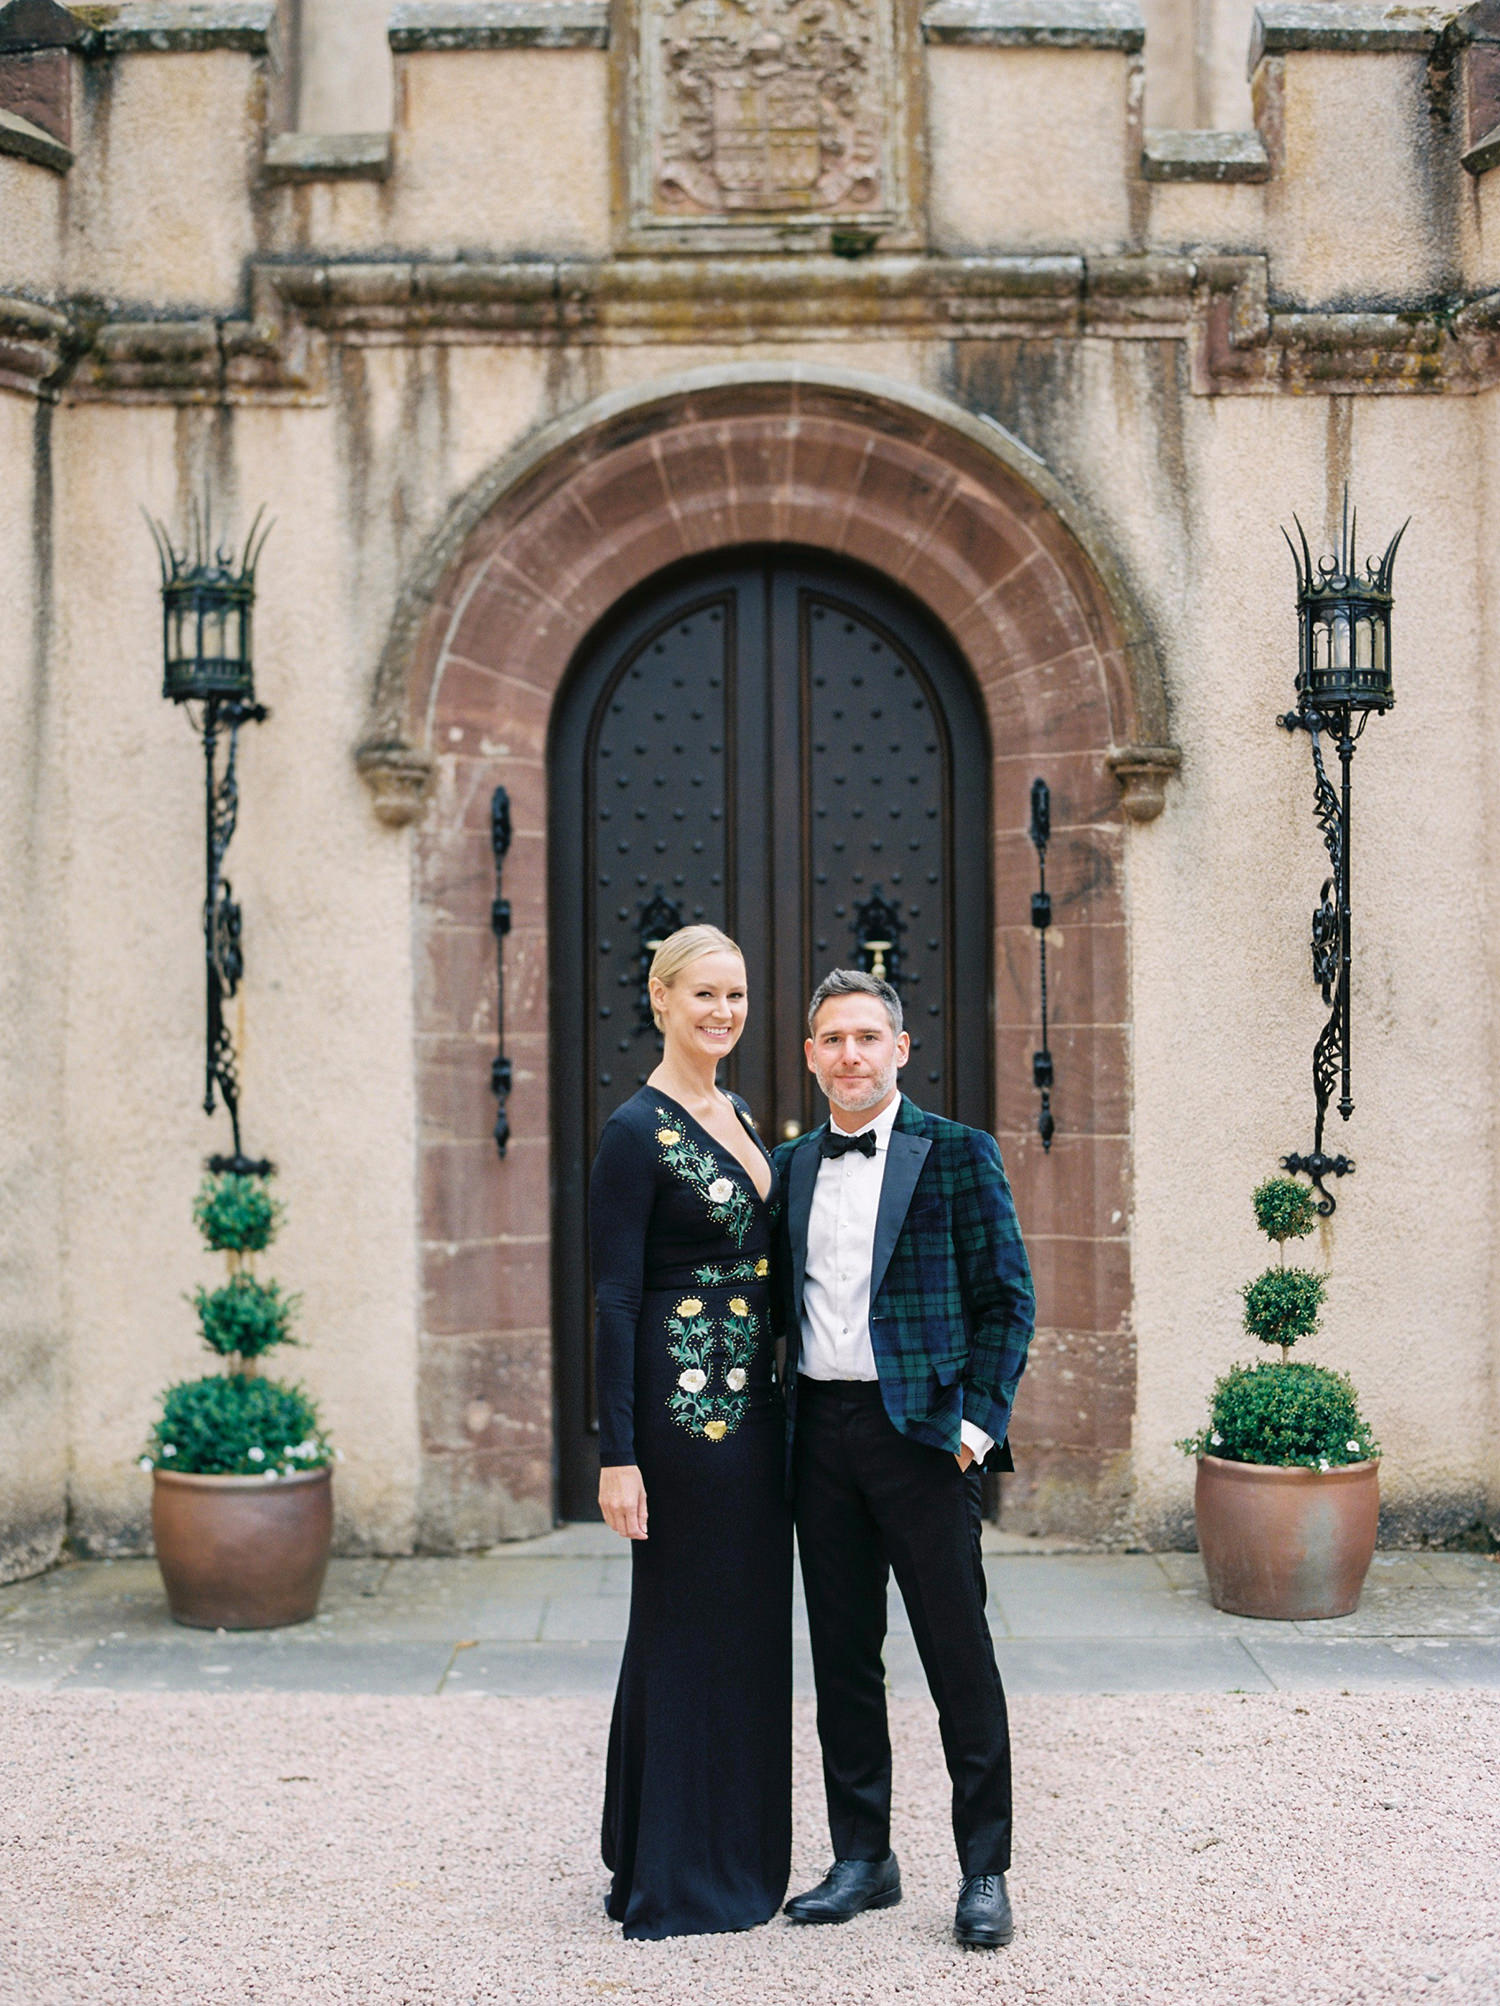 The couple welcoming their guests at the entrance of the Castle.